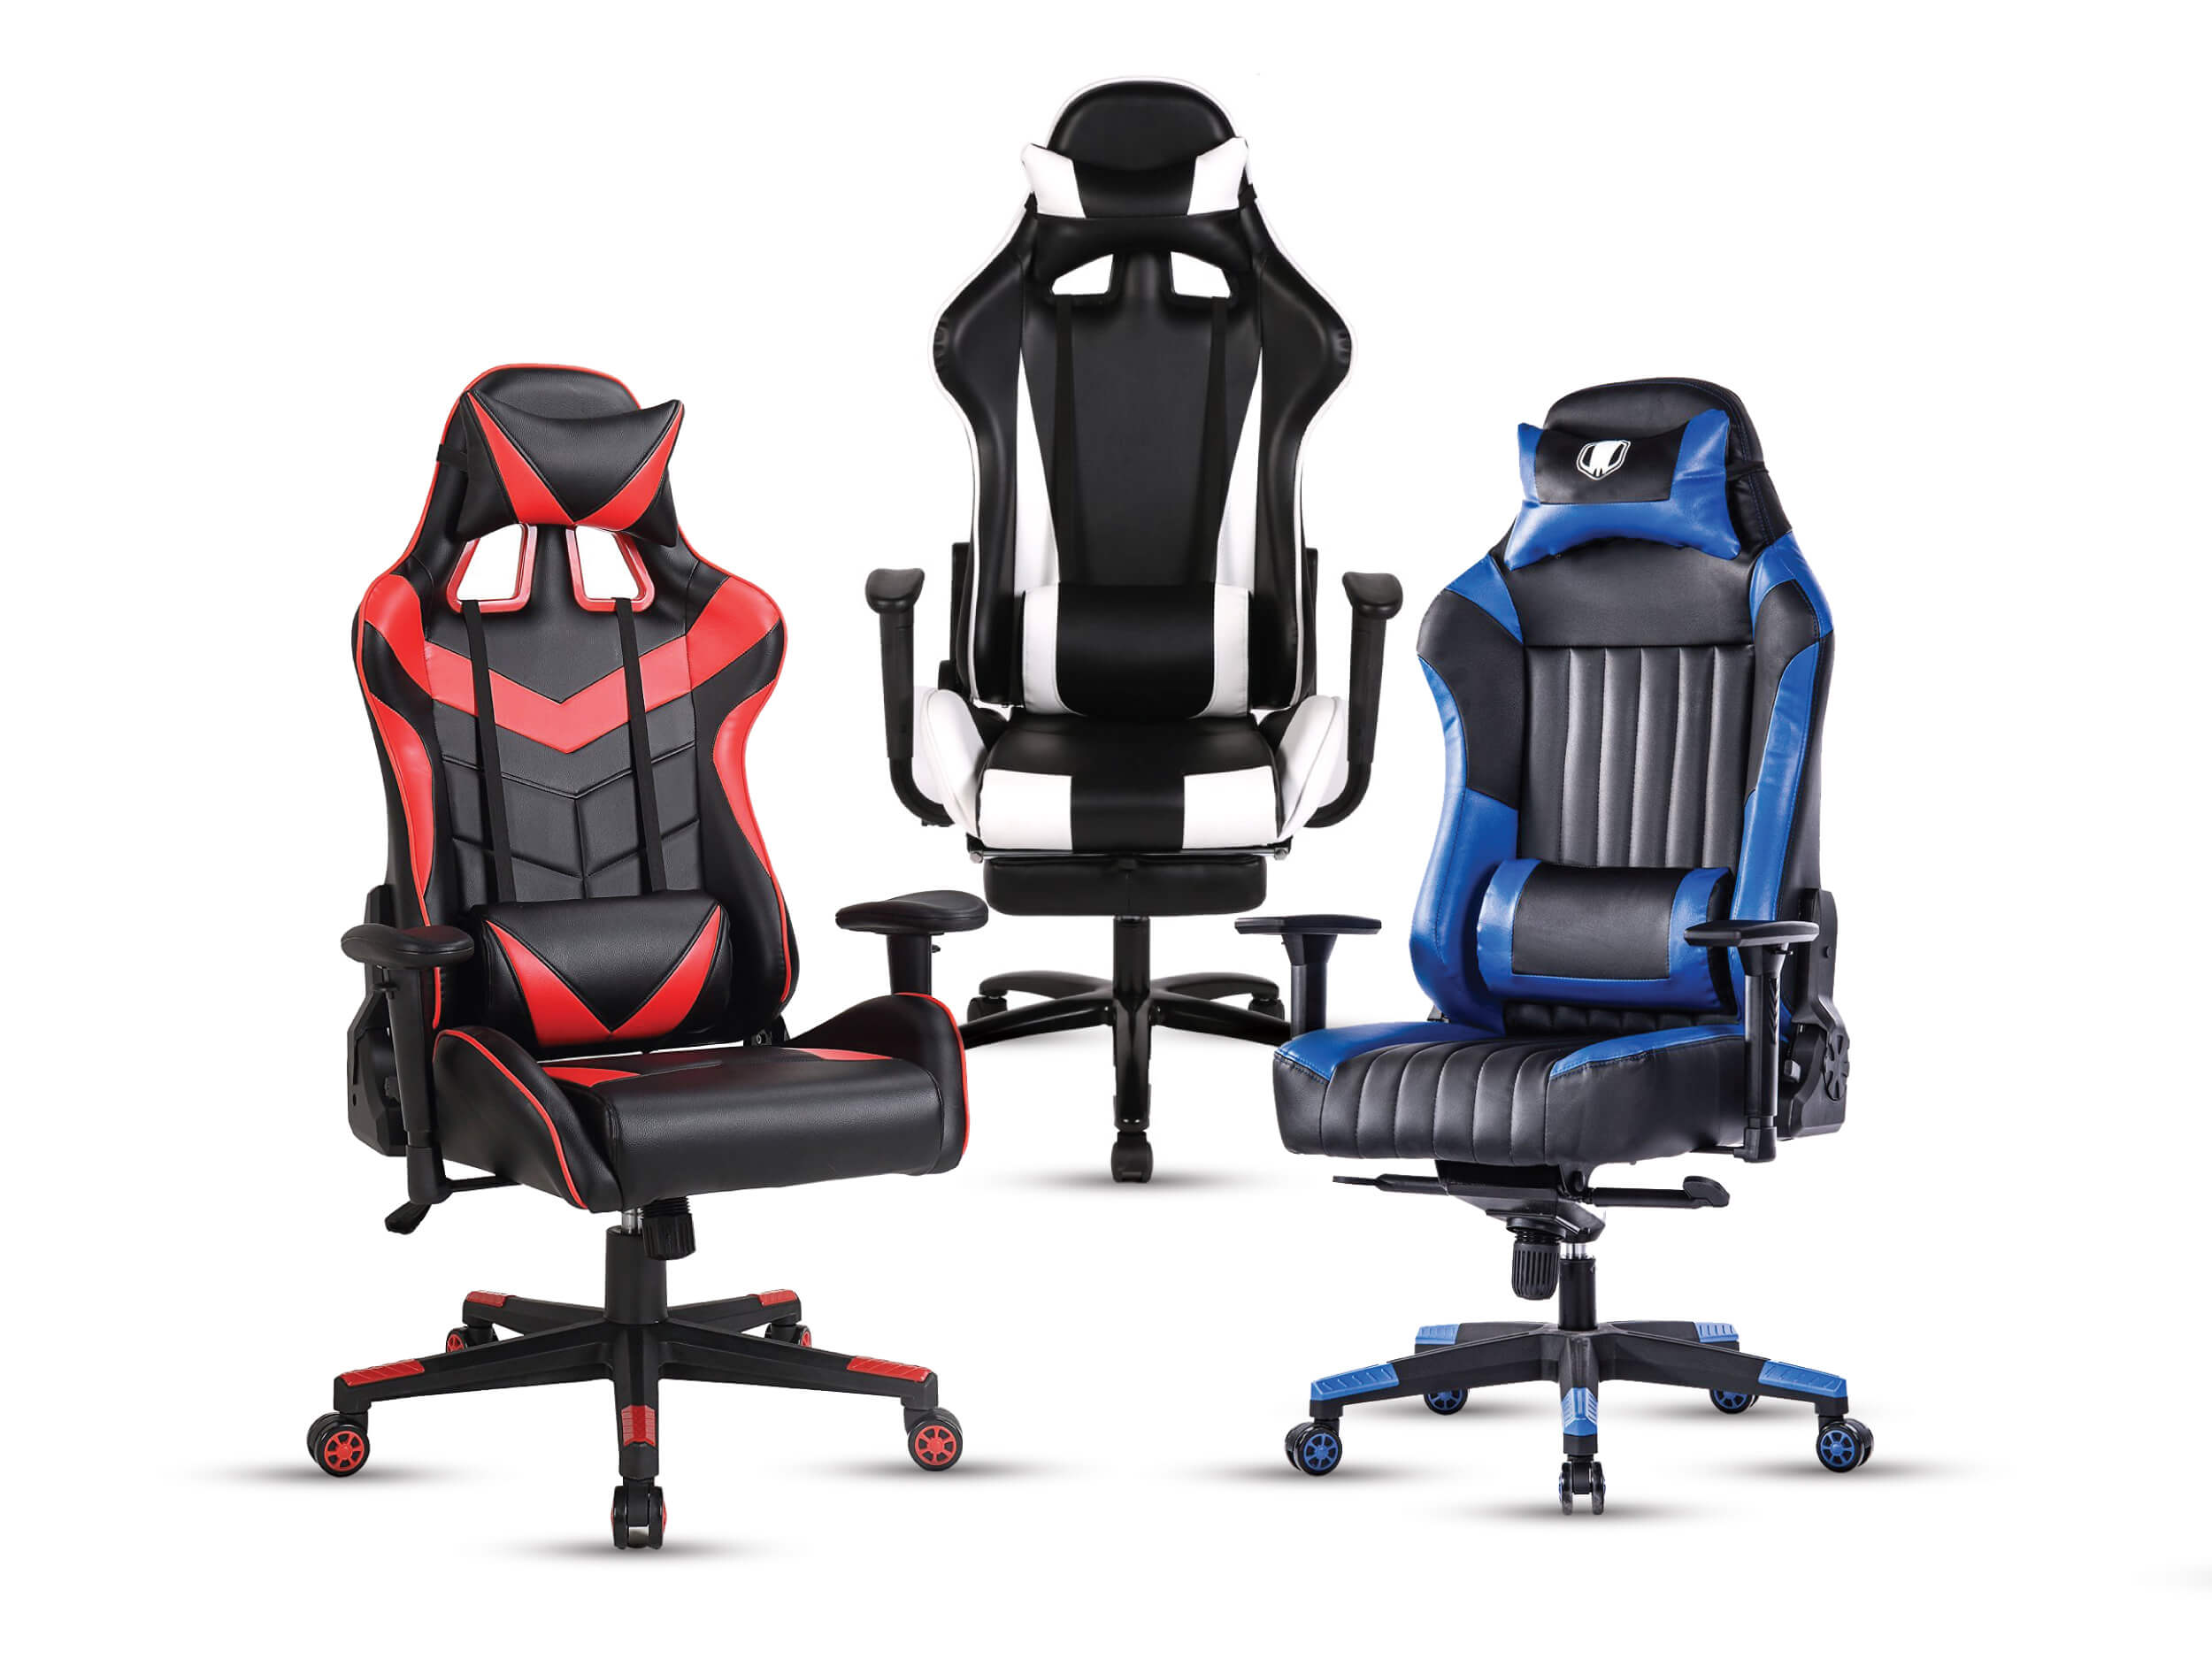 Gaming Chair Cyber Monday Sales Top Deals in 2017